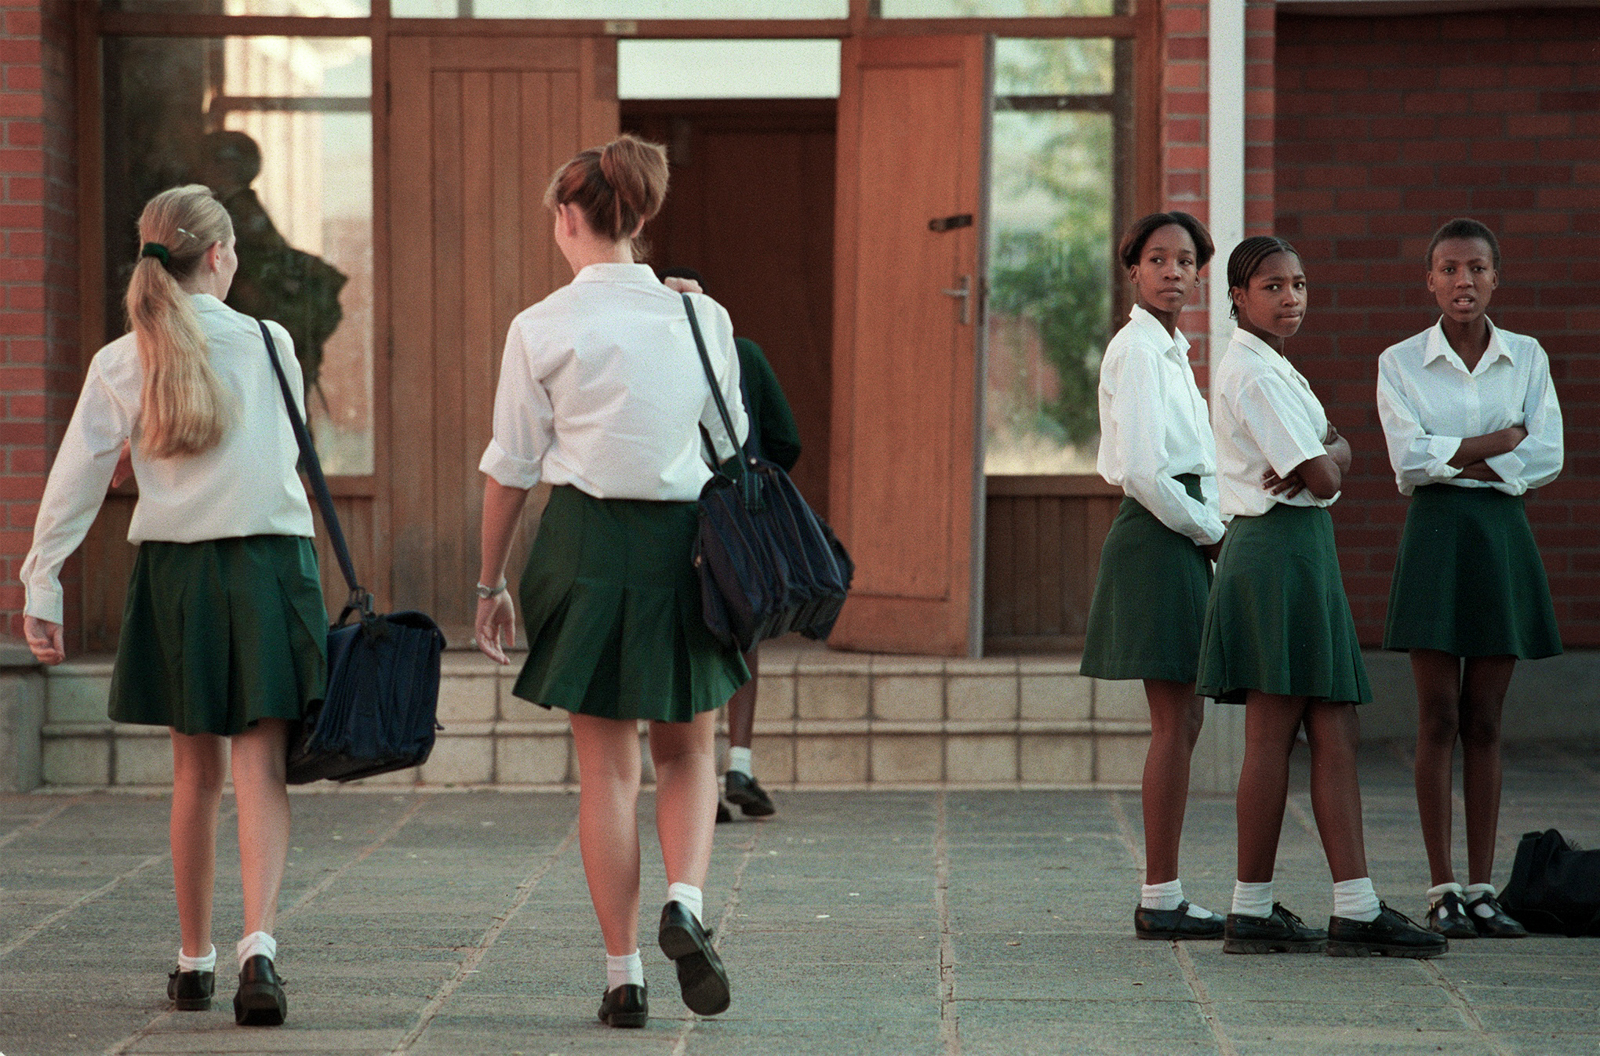 FG.Vryburg.1.0429.ARVryburg High School has been the scene of strong and sometimes violent racial tension between black and white students as well as their parents. Most recently a black student stabbed a white student in the neck with scissors. A group of black students watch as white fellow students arrive for school at Vryburg High School. Photo taken 4/15/99.Photo/Art by:Anacleto Rapping